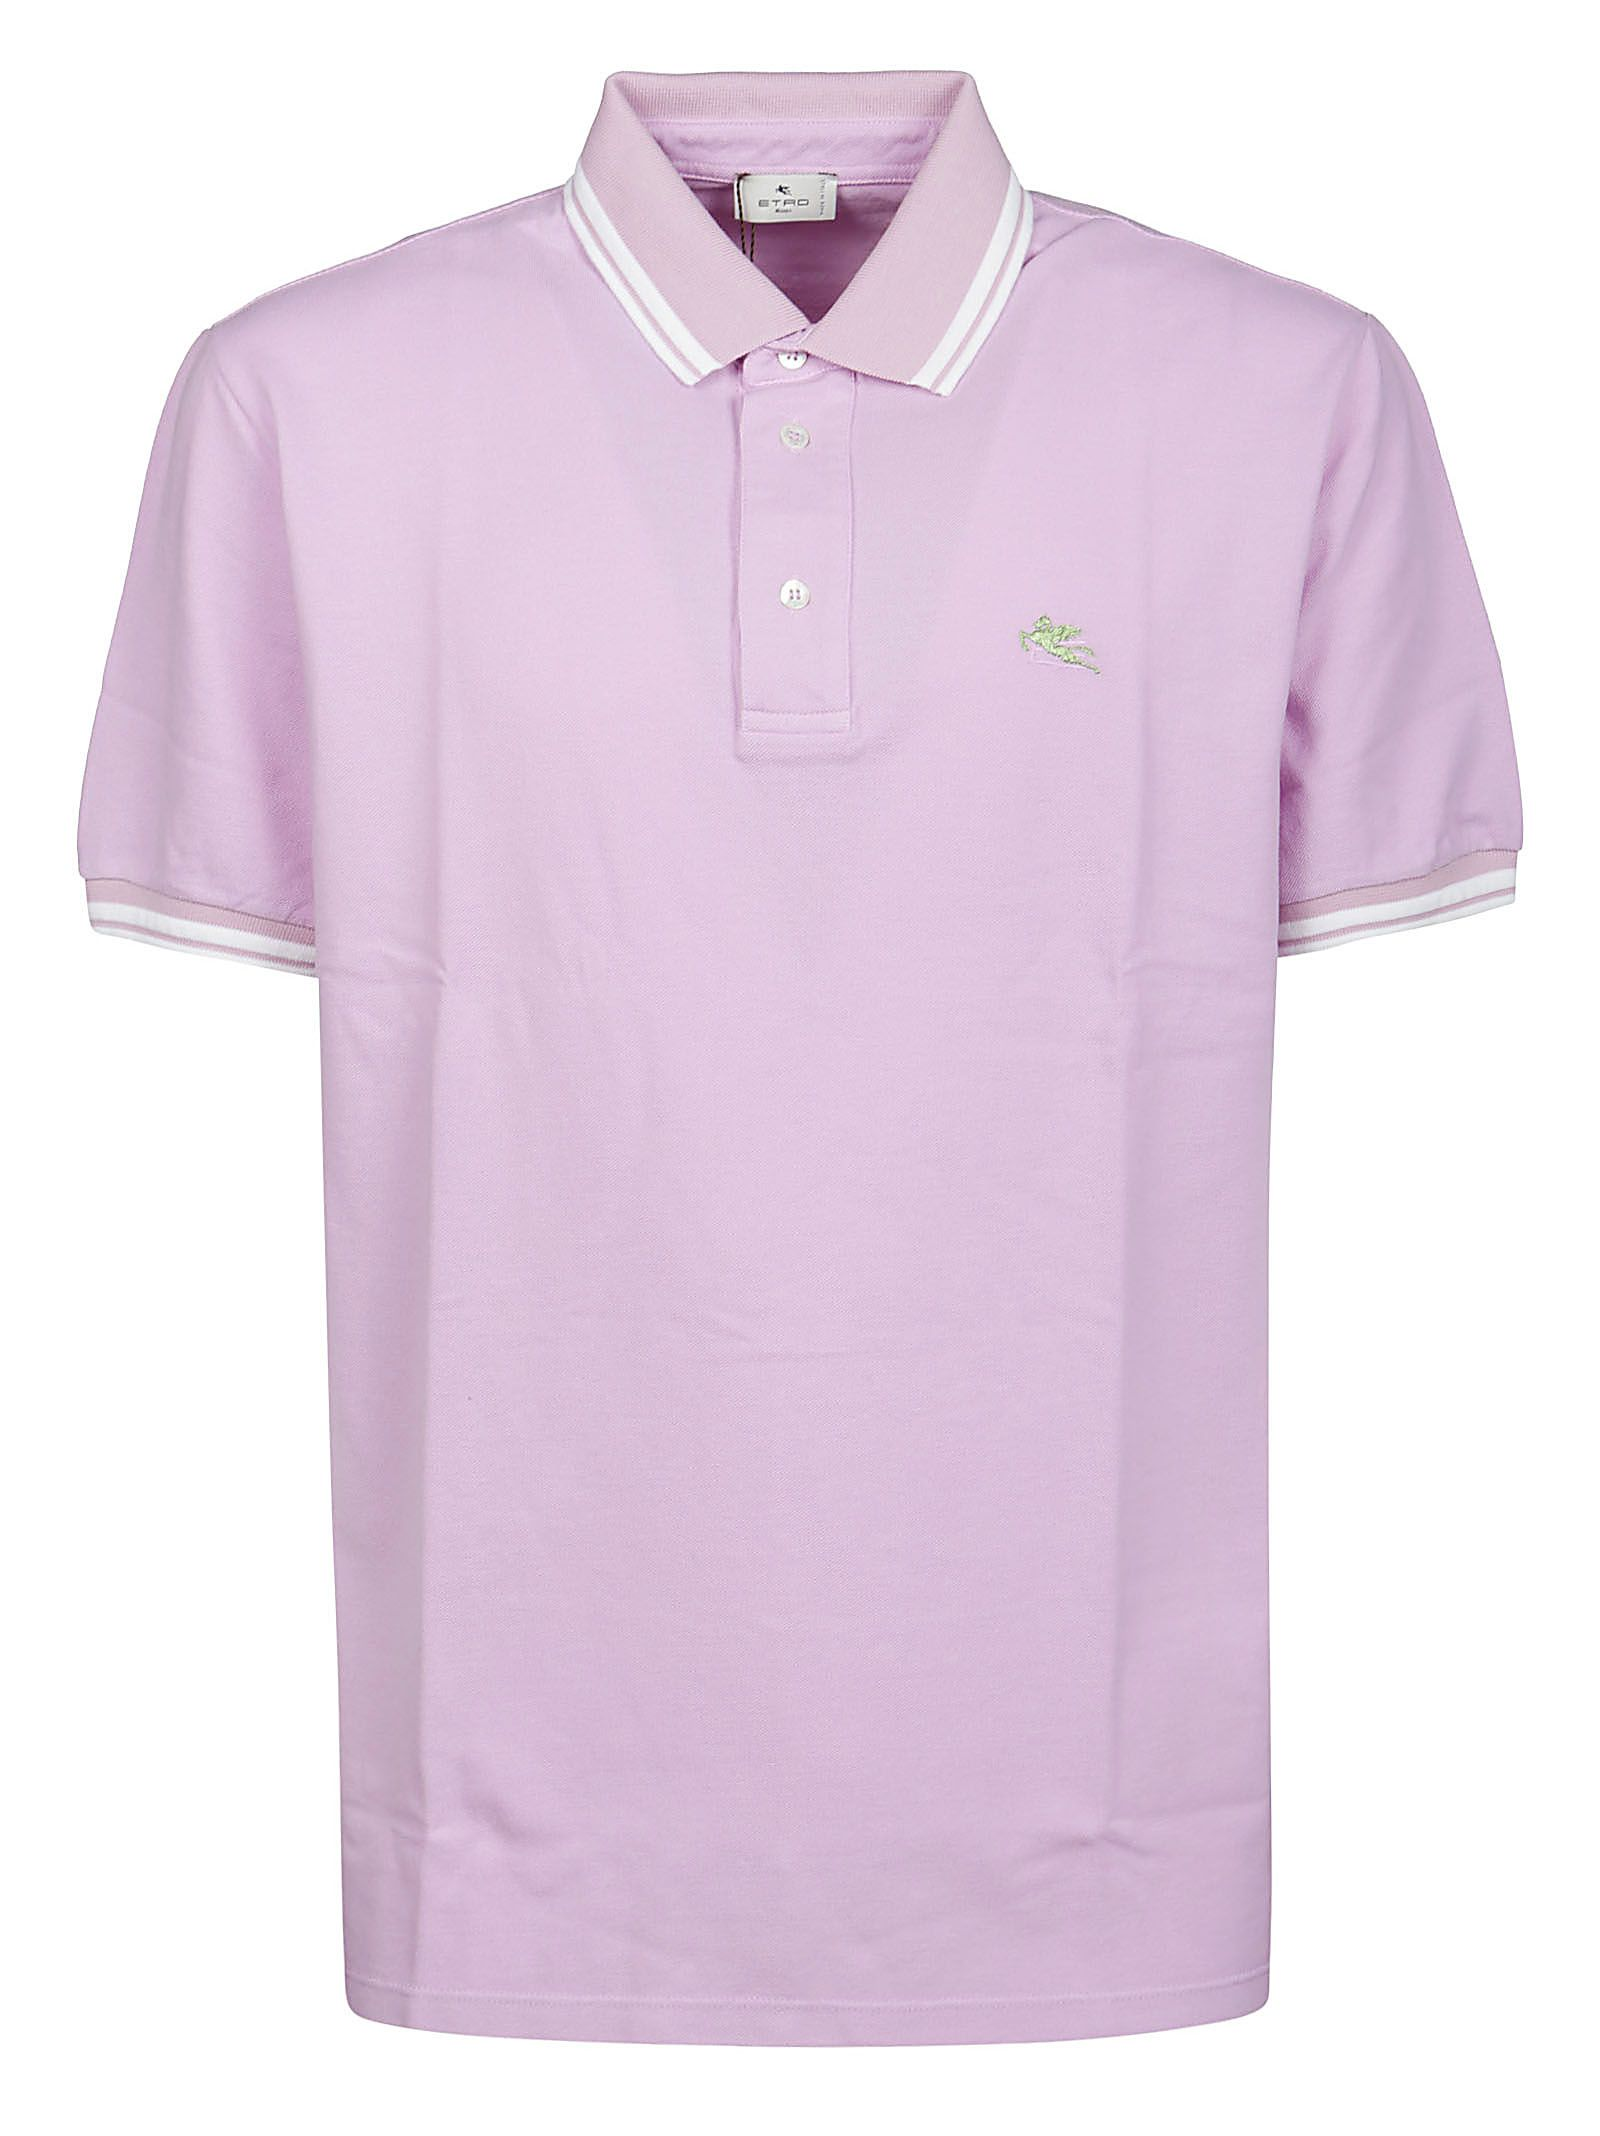 Etro Tops ETRO MEN'S PURPLE OTHER MATERIALS POLO SHIRT